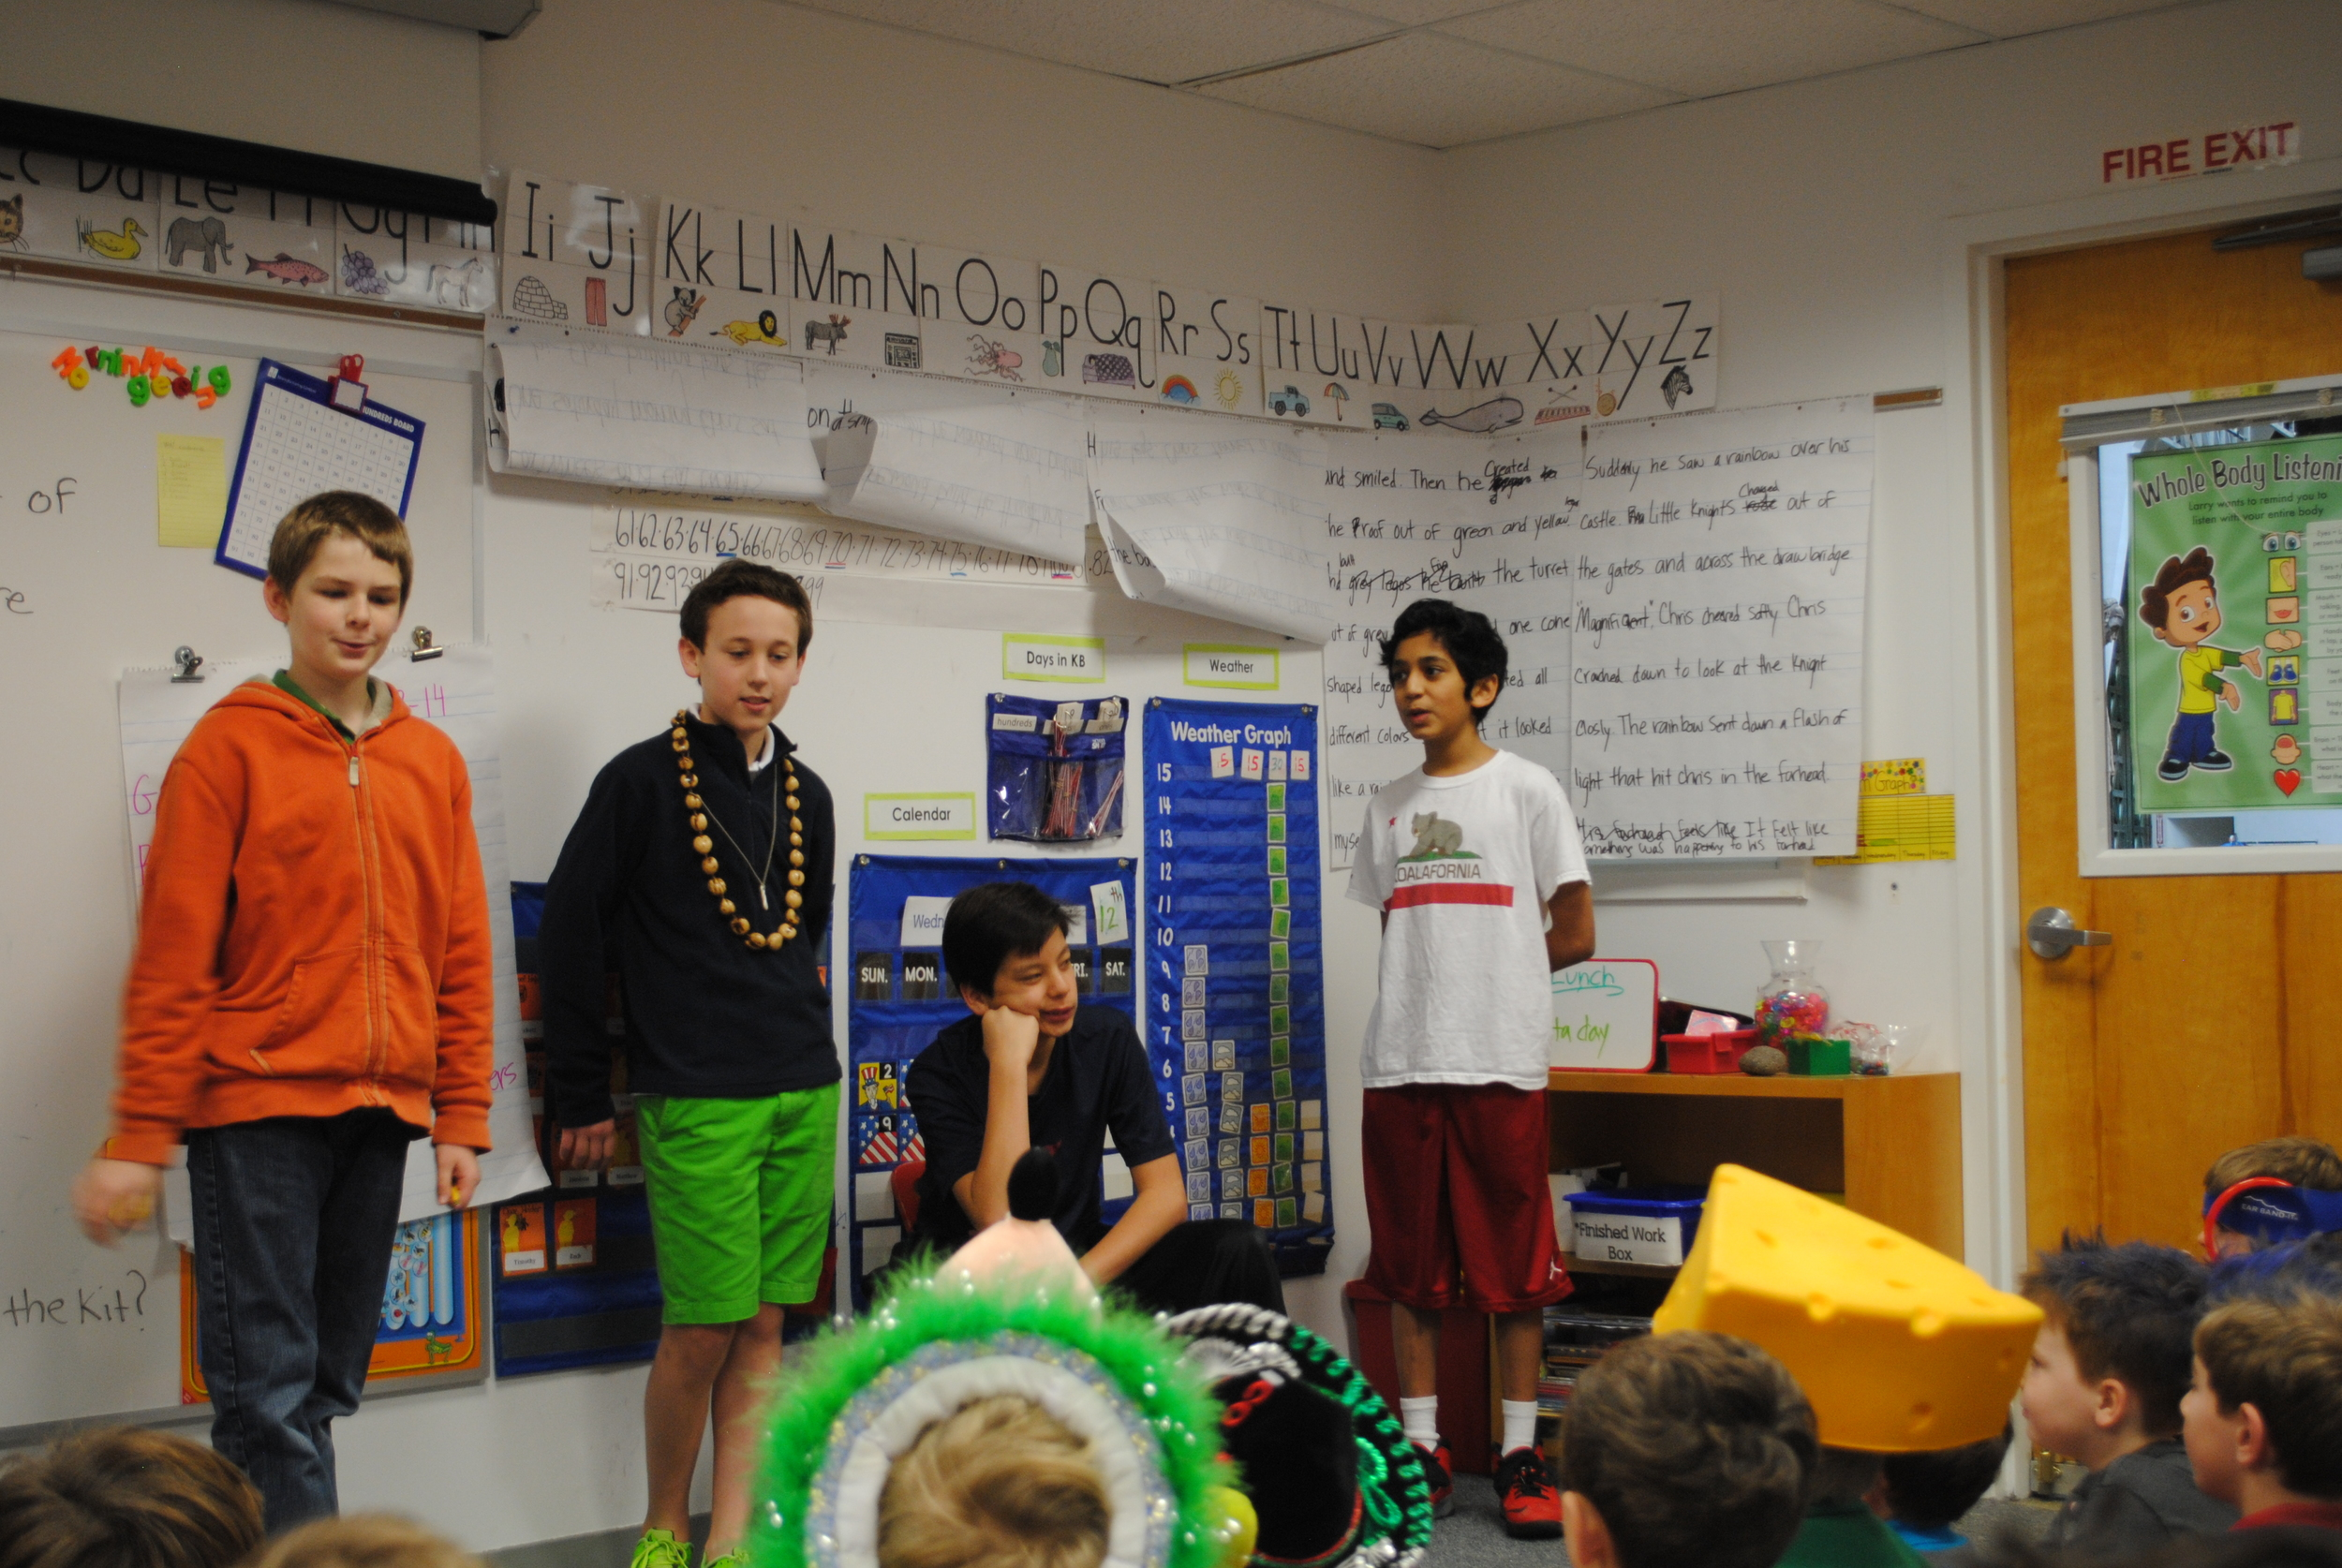 2nd grade lessons on lending and life.